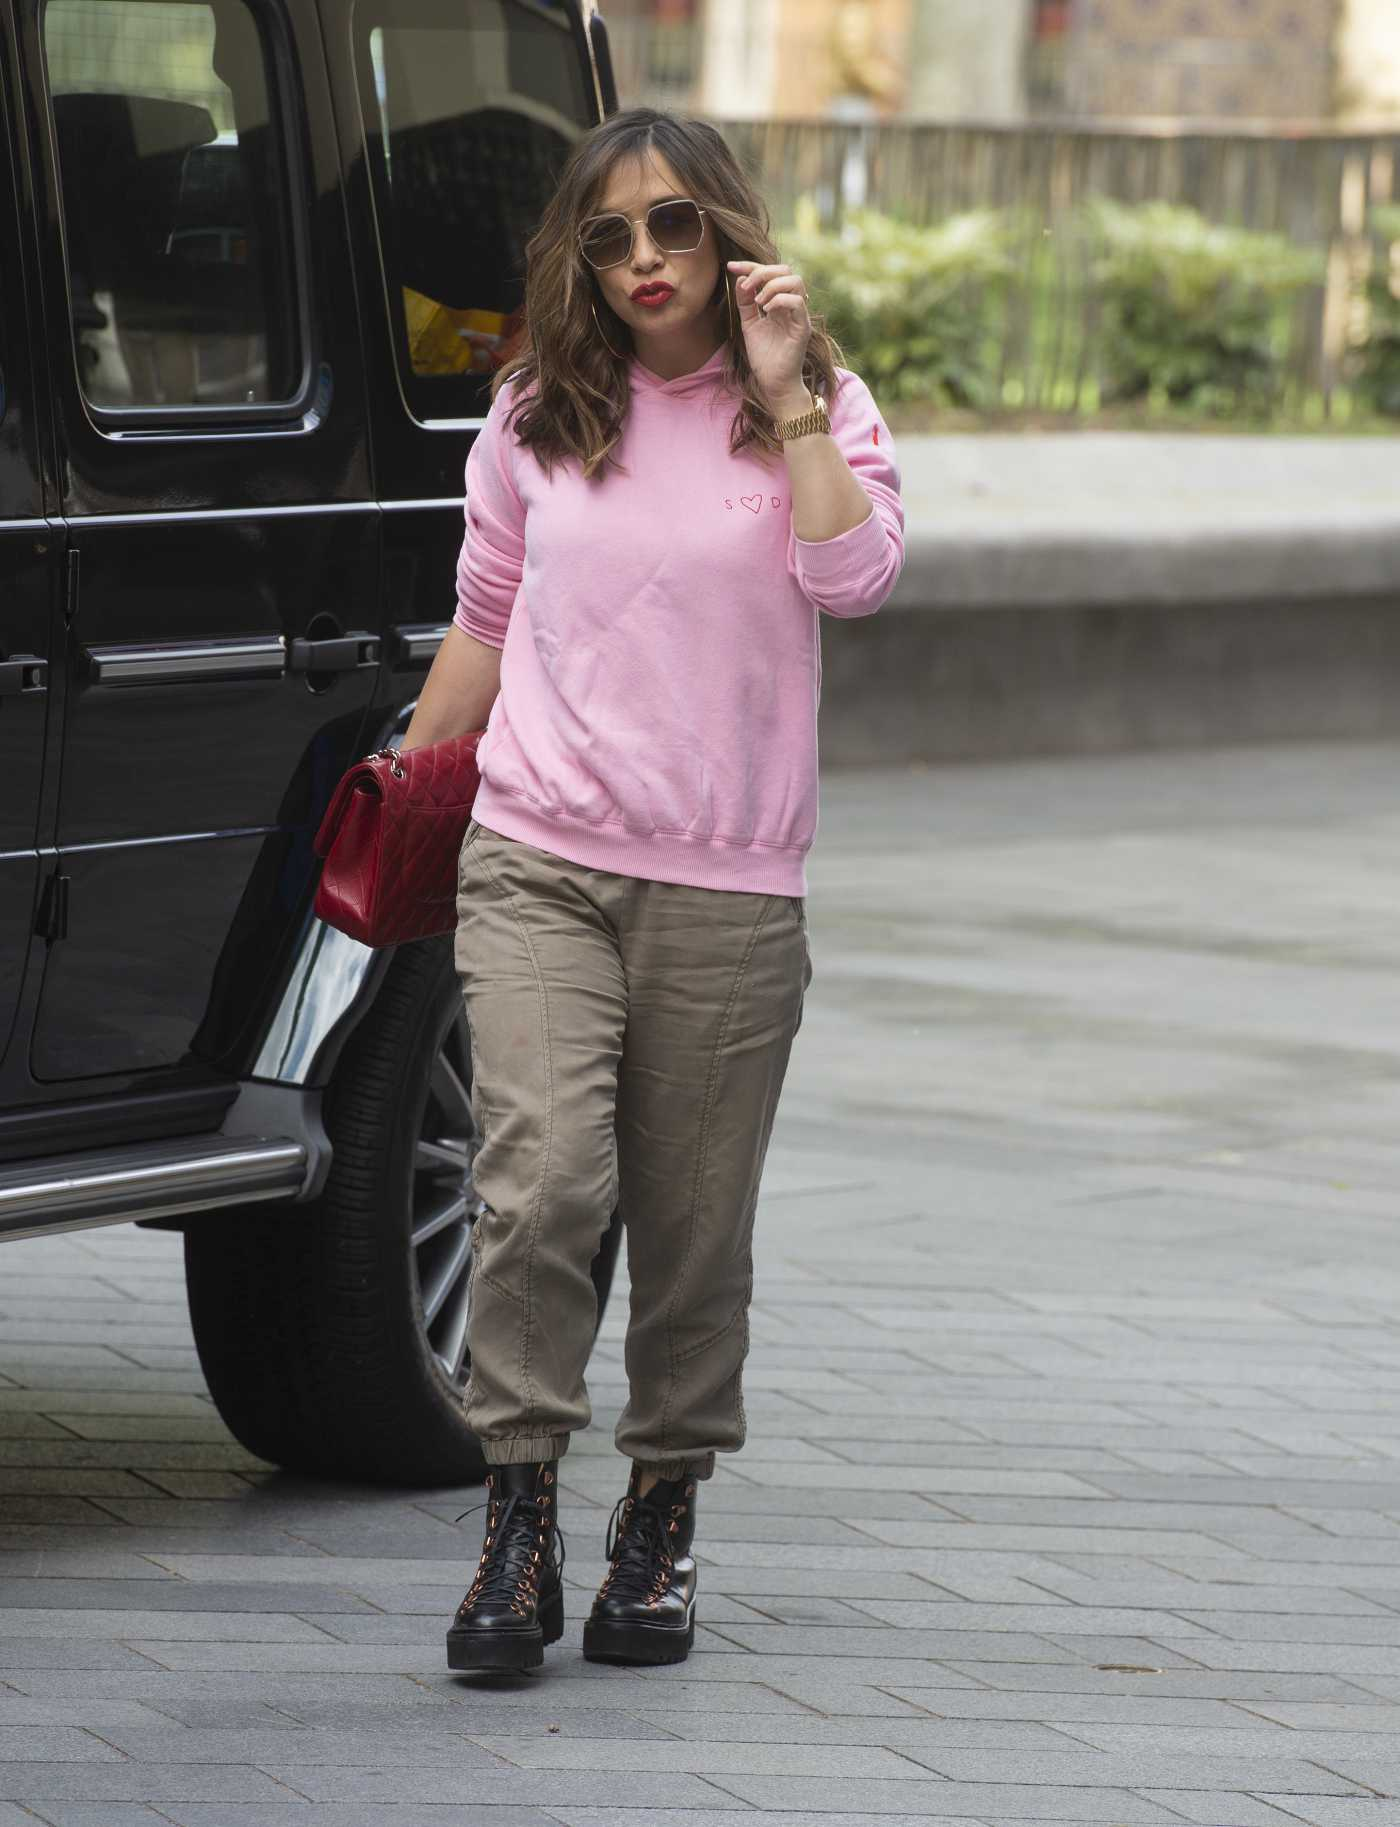 Myleene Klass in a Pink Hoody Arrives at the Global Studios in London 05/13/2020